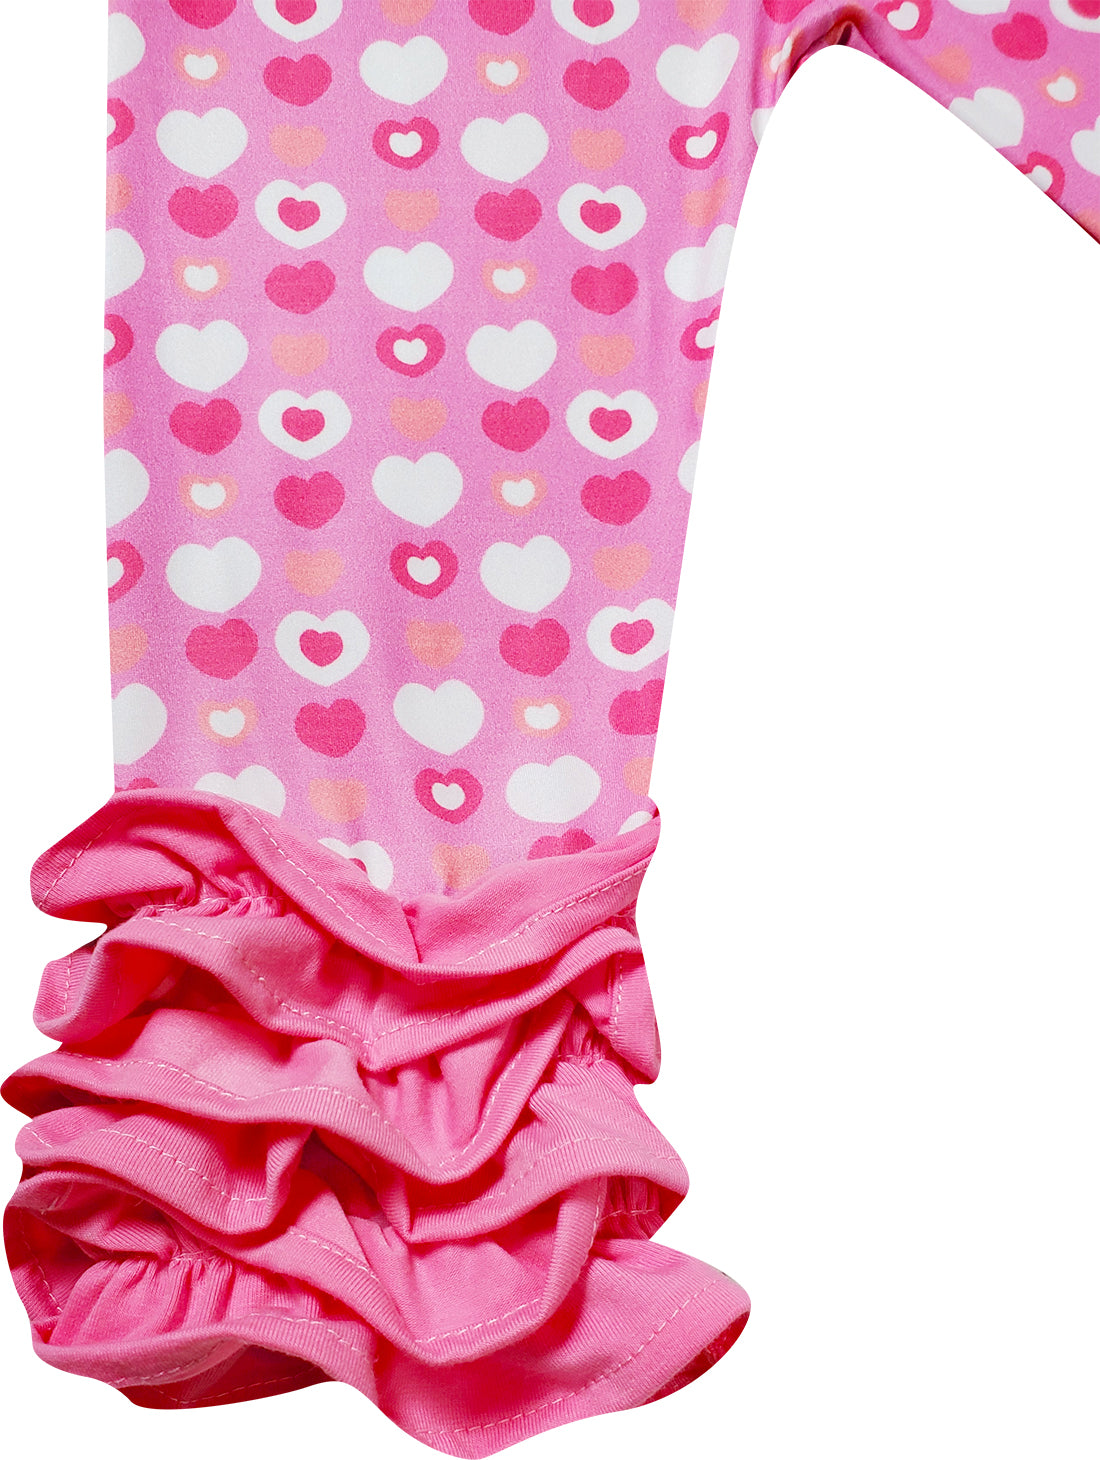 Baby Toddler Little Girls Minnie Mouse Love Hearts Ruffle Top Capri Set - Pink